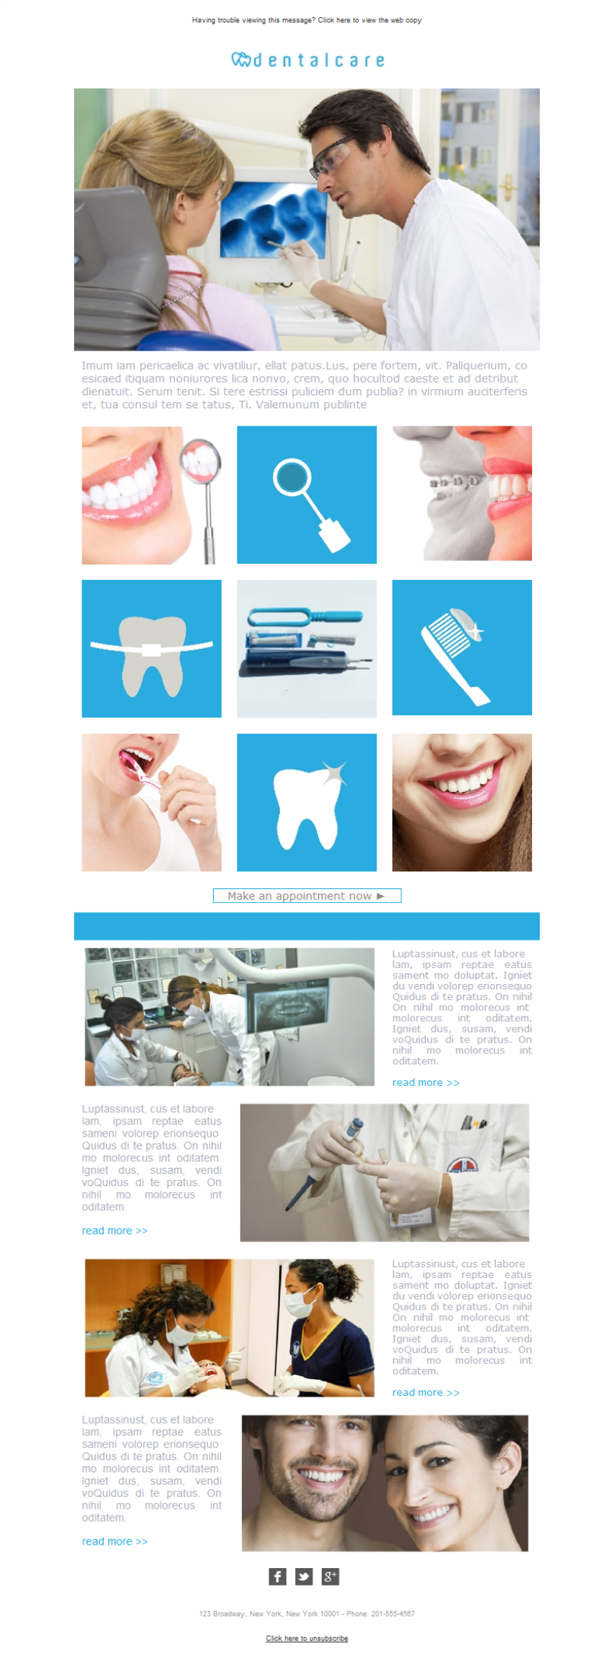 Templates Emailing Dentist Care Sarbacane